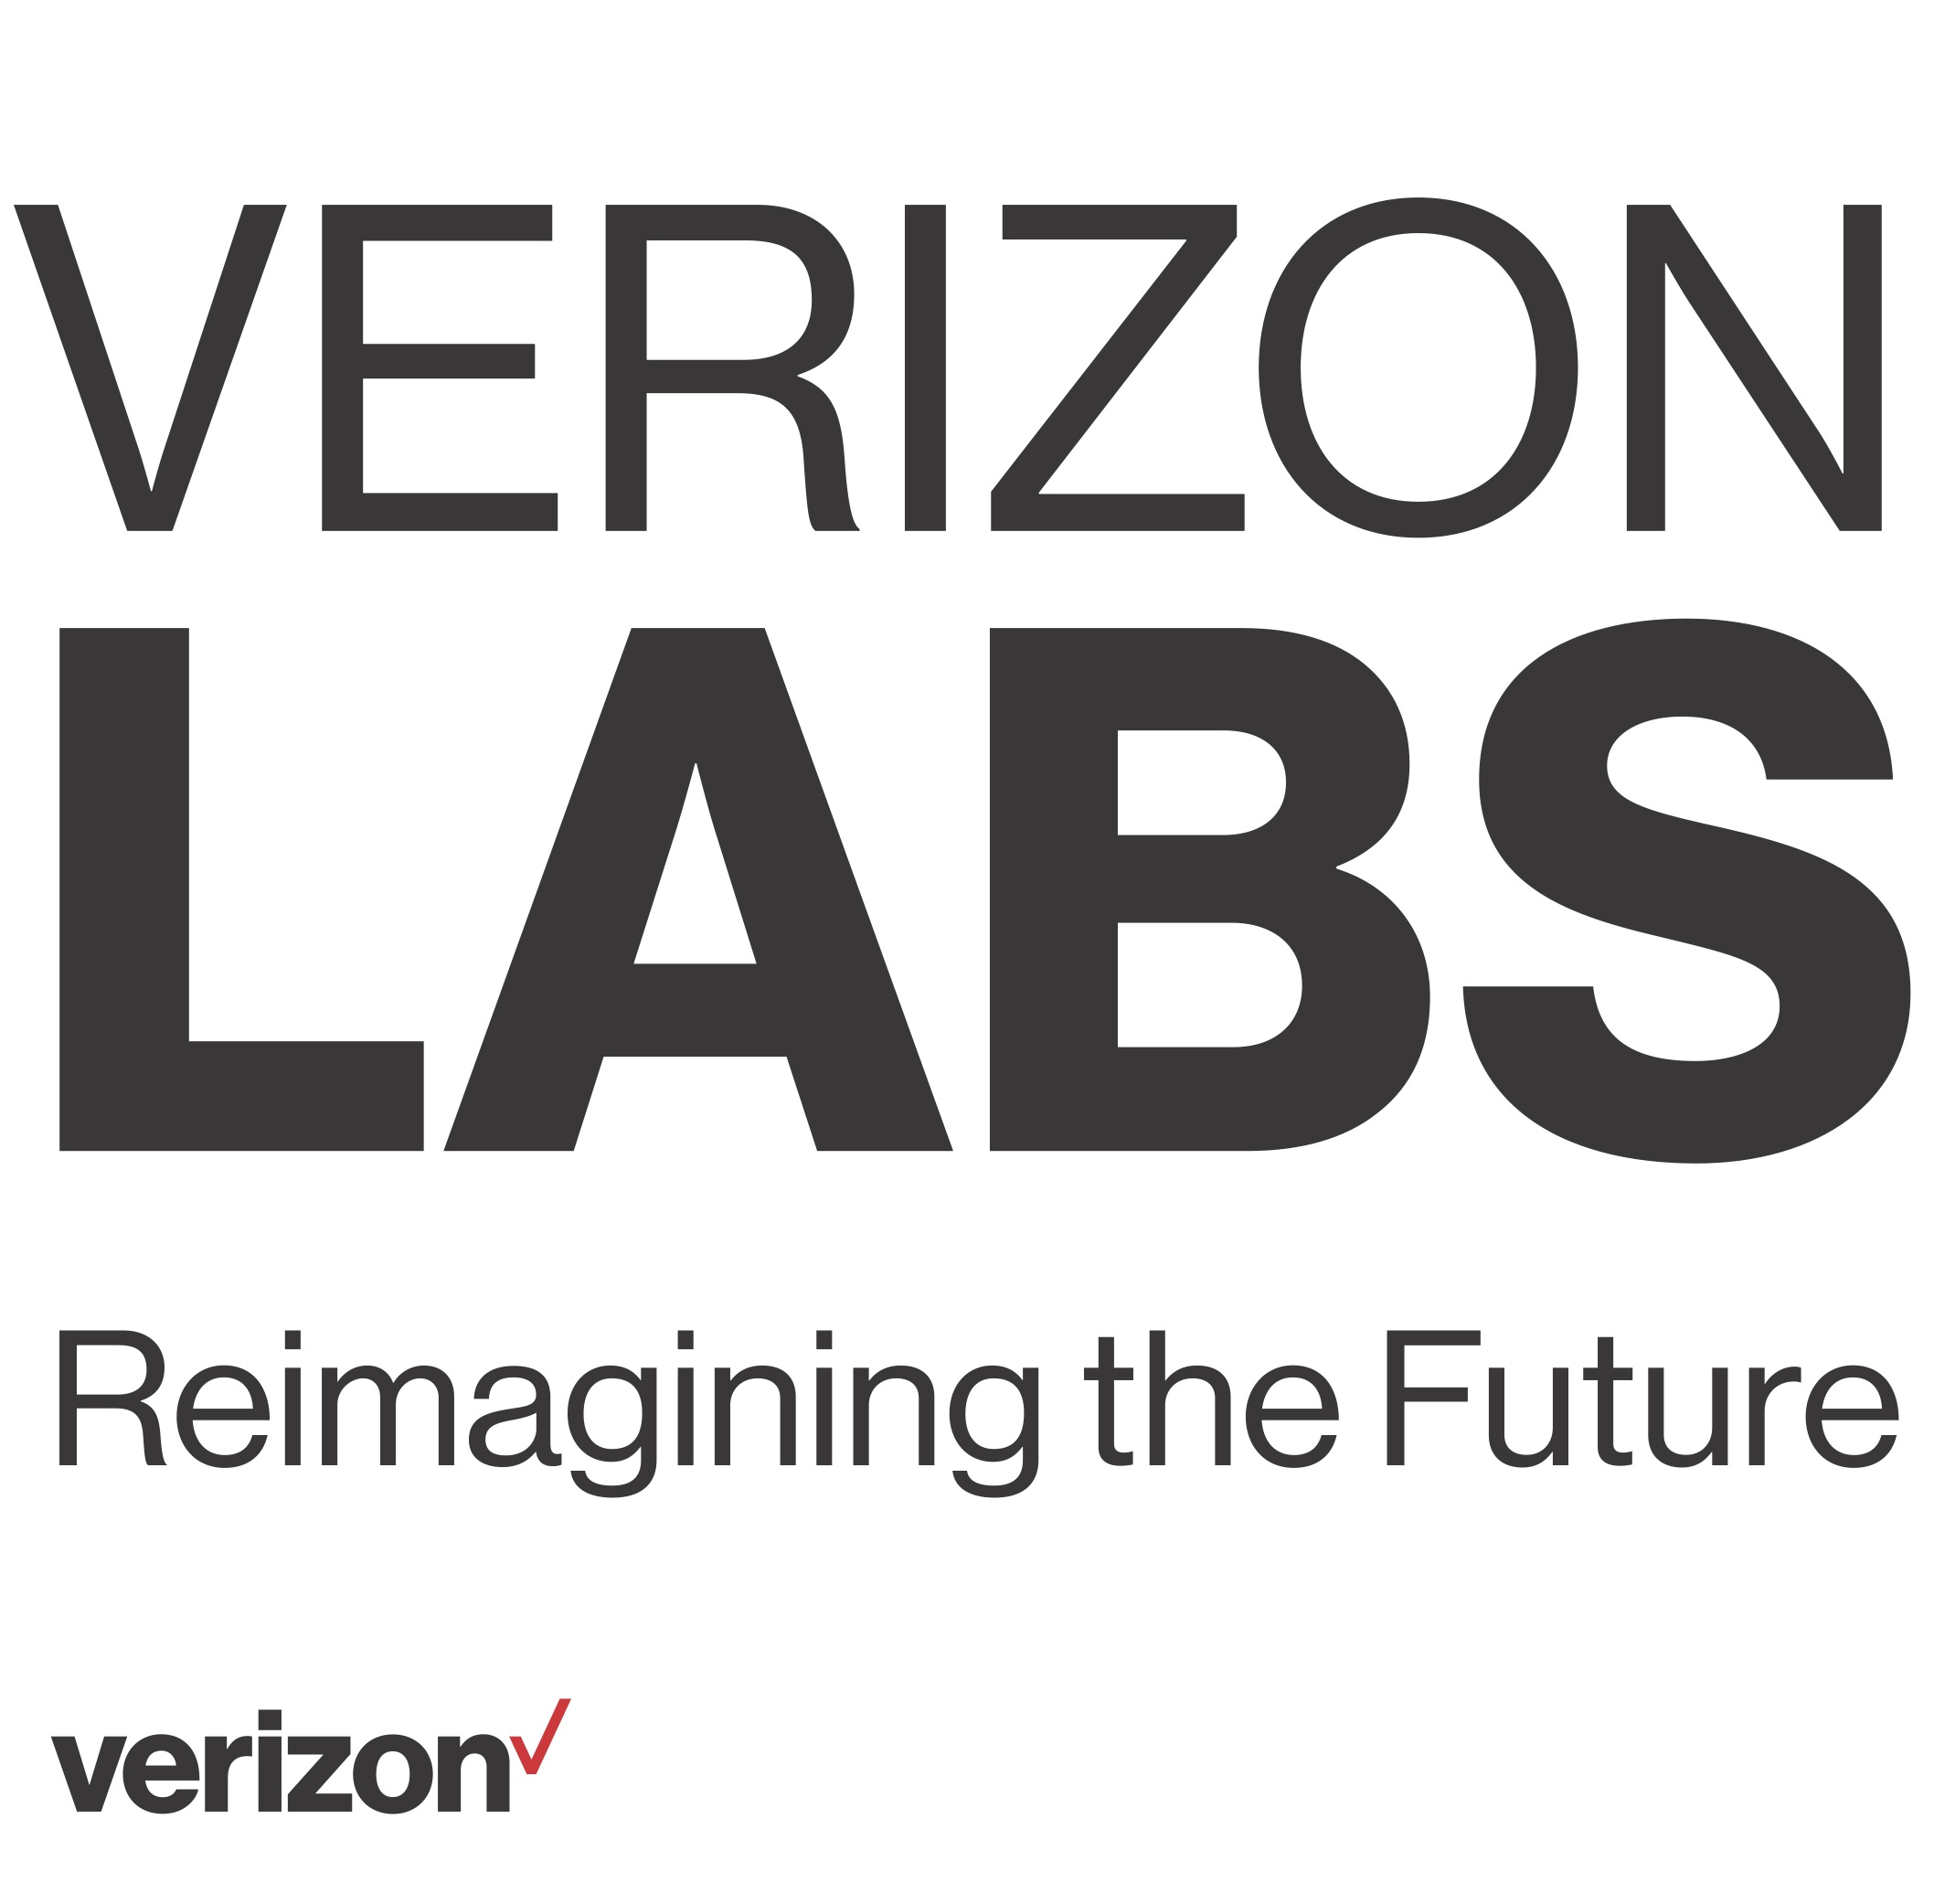 Verizon Labs logo